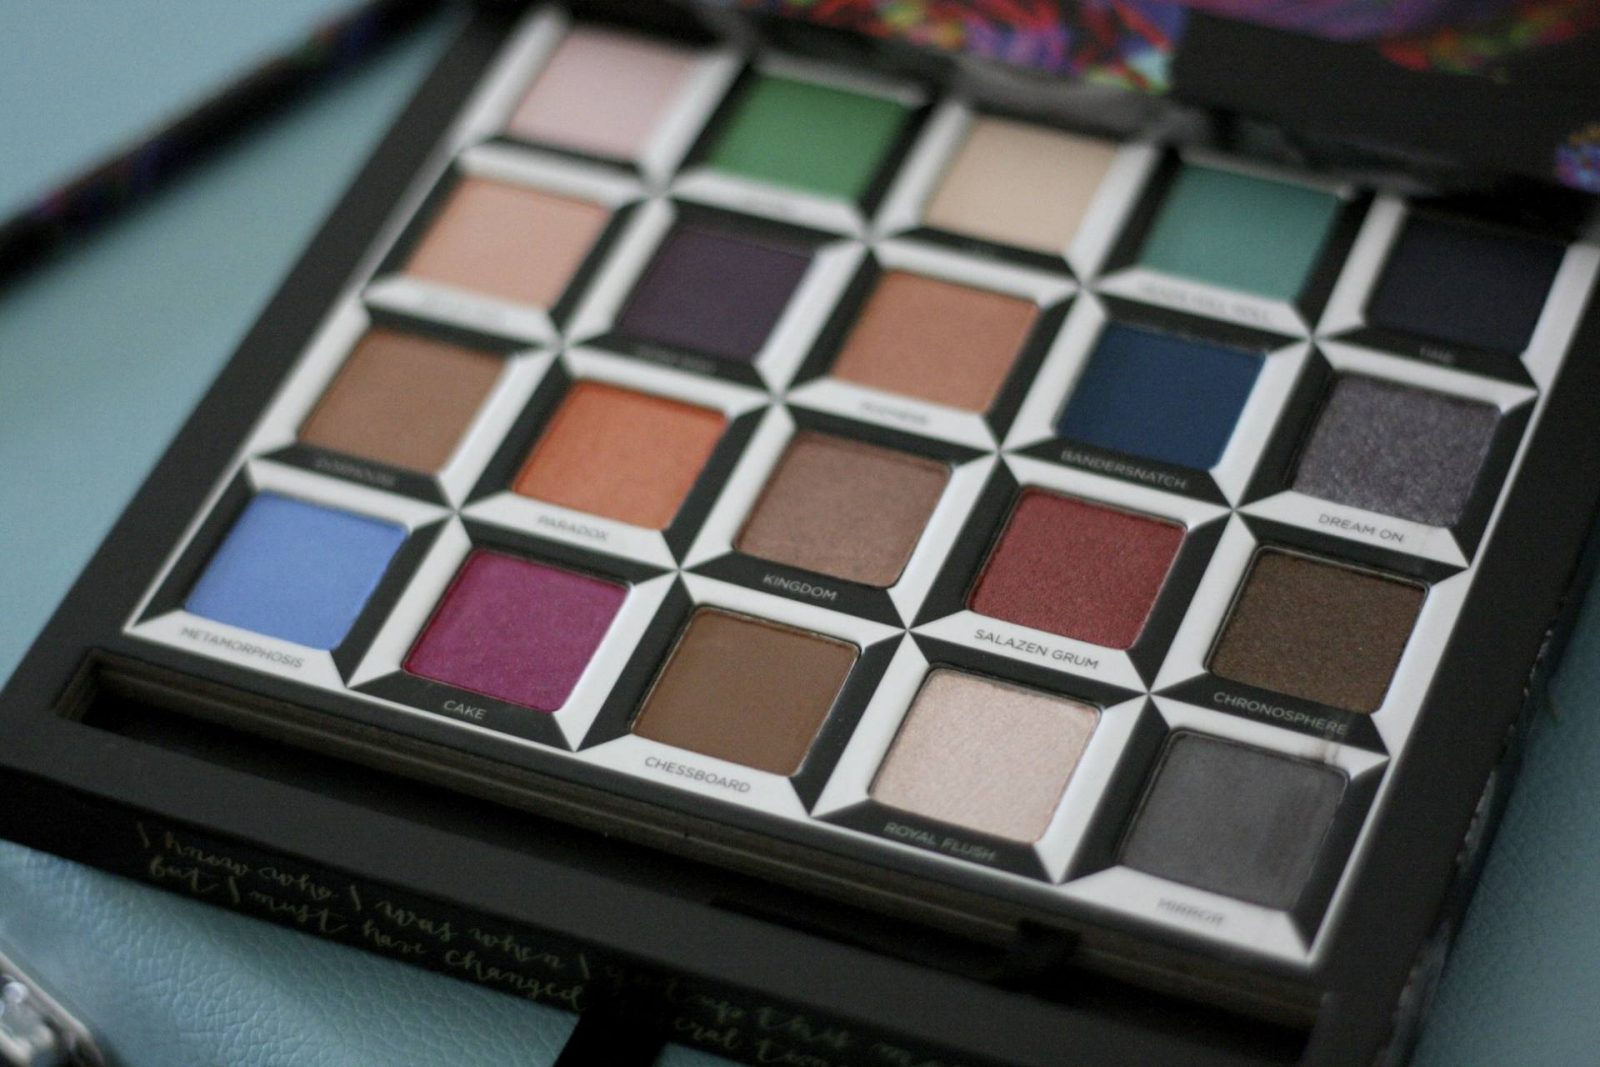 Urban Decay Alice in Wonderland Through the Looking Glass Palette